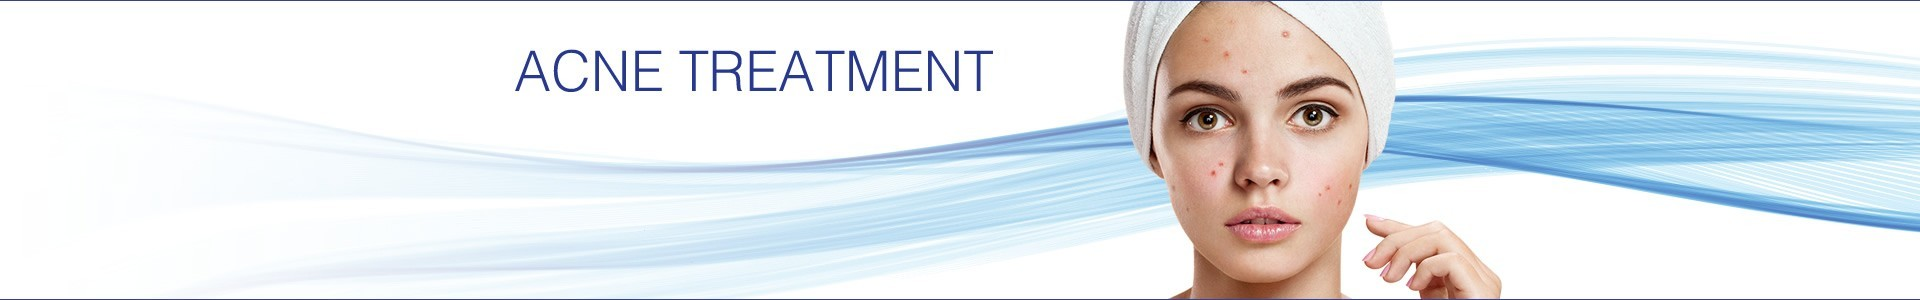 Acne Treatment - Smooth Skin Health Centre Hamilton - Advanced Technology